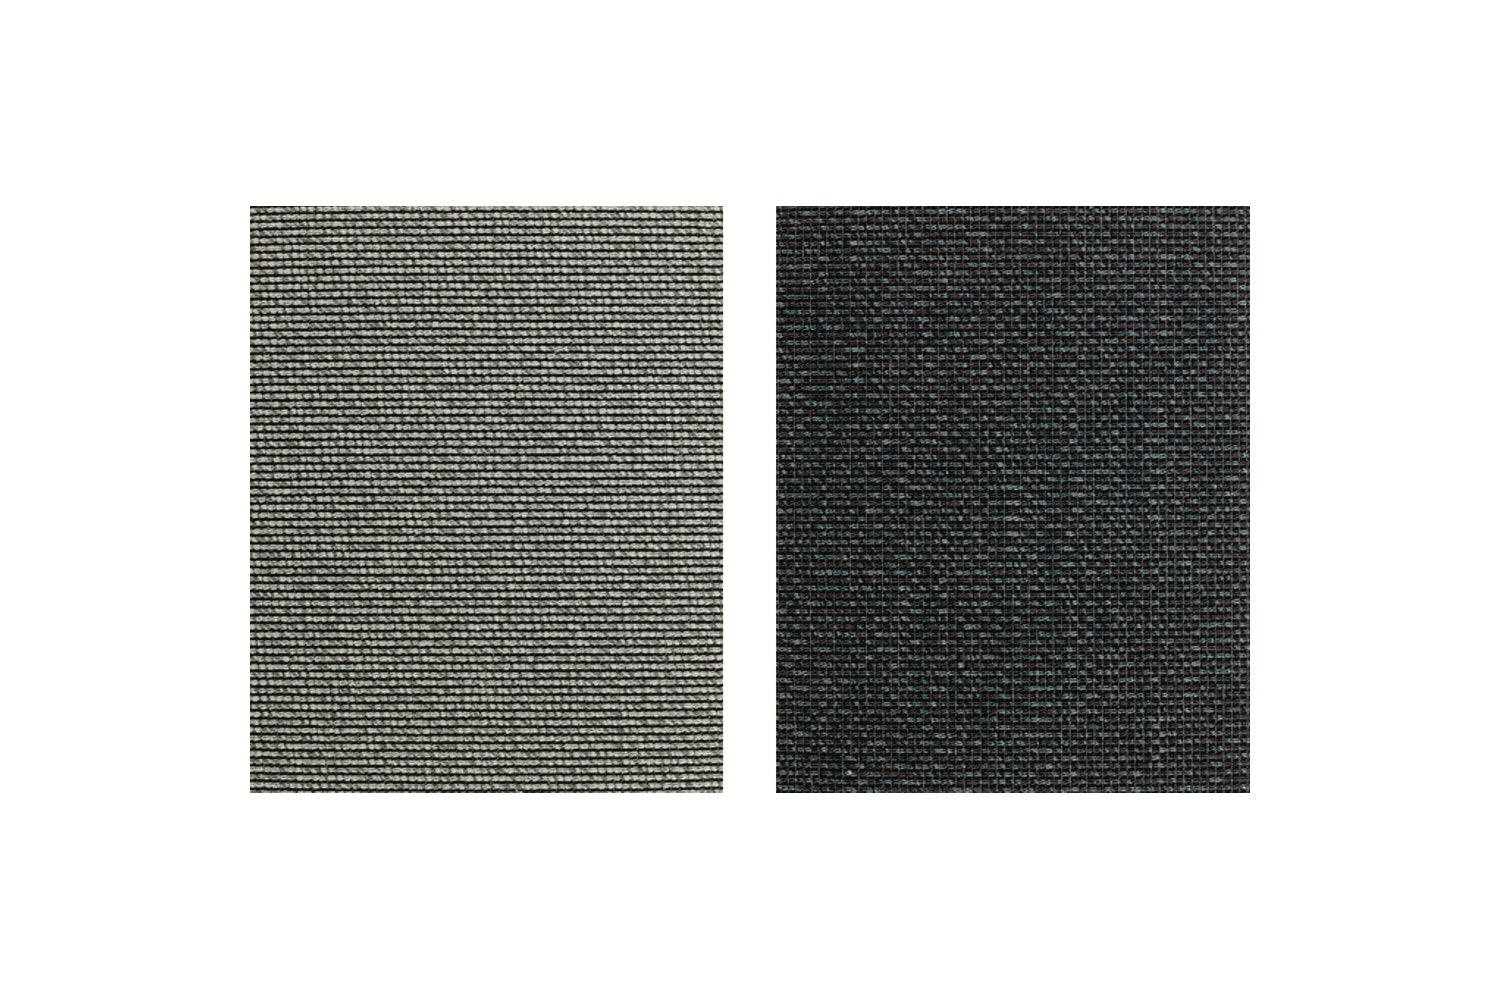 Nano Woven Wall-to-Wall Carpet by Anna Schou for Kasthall